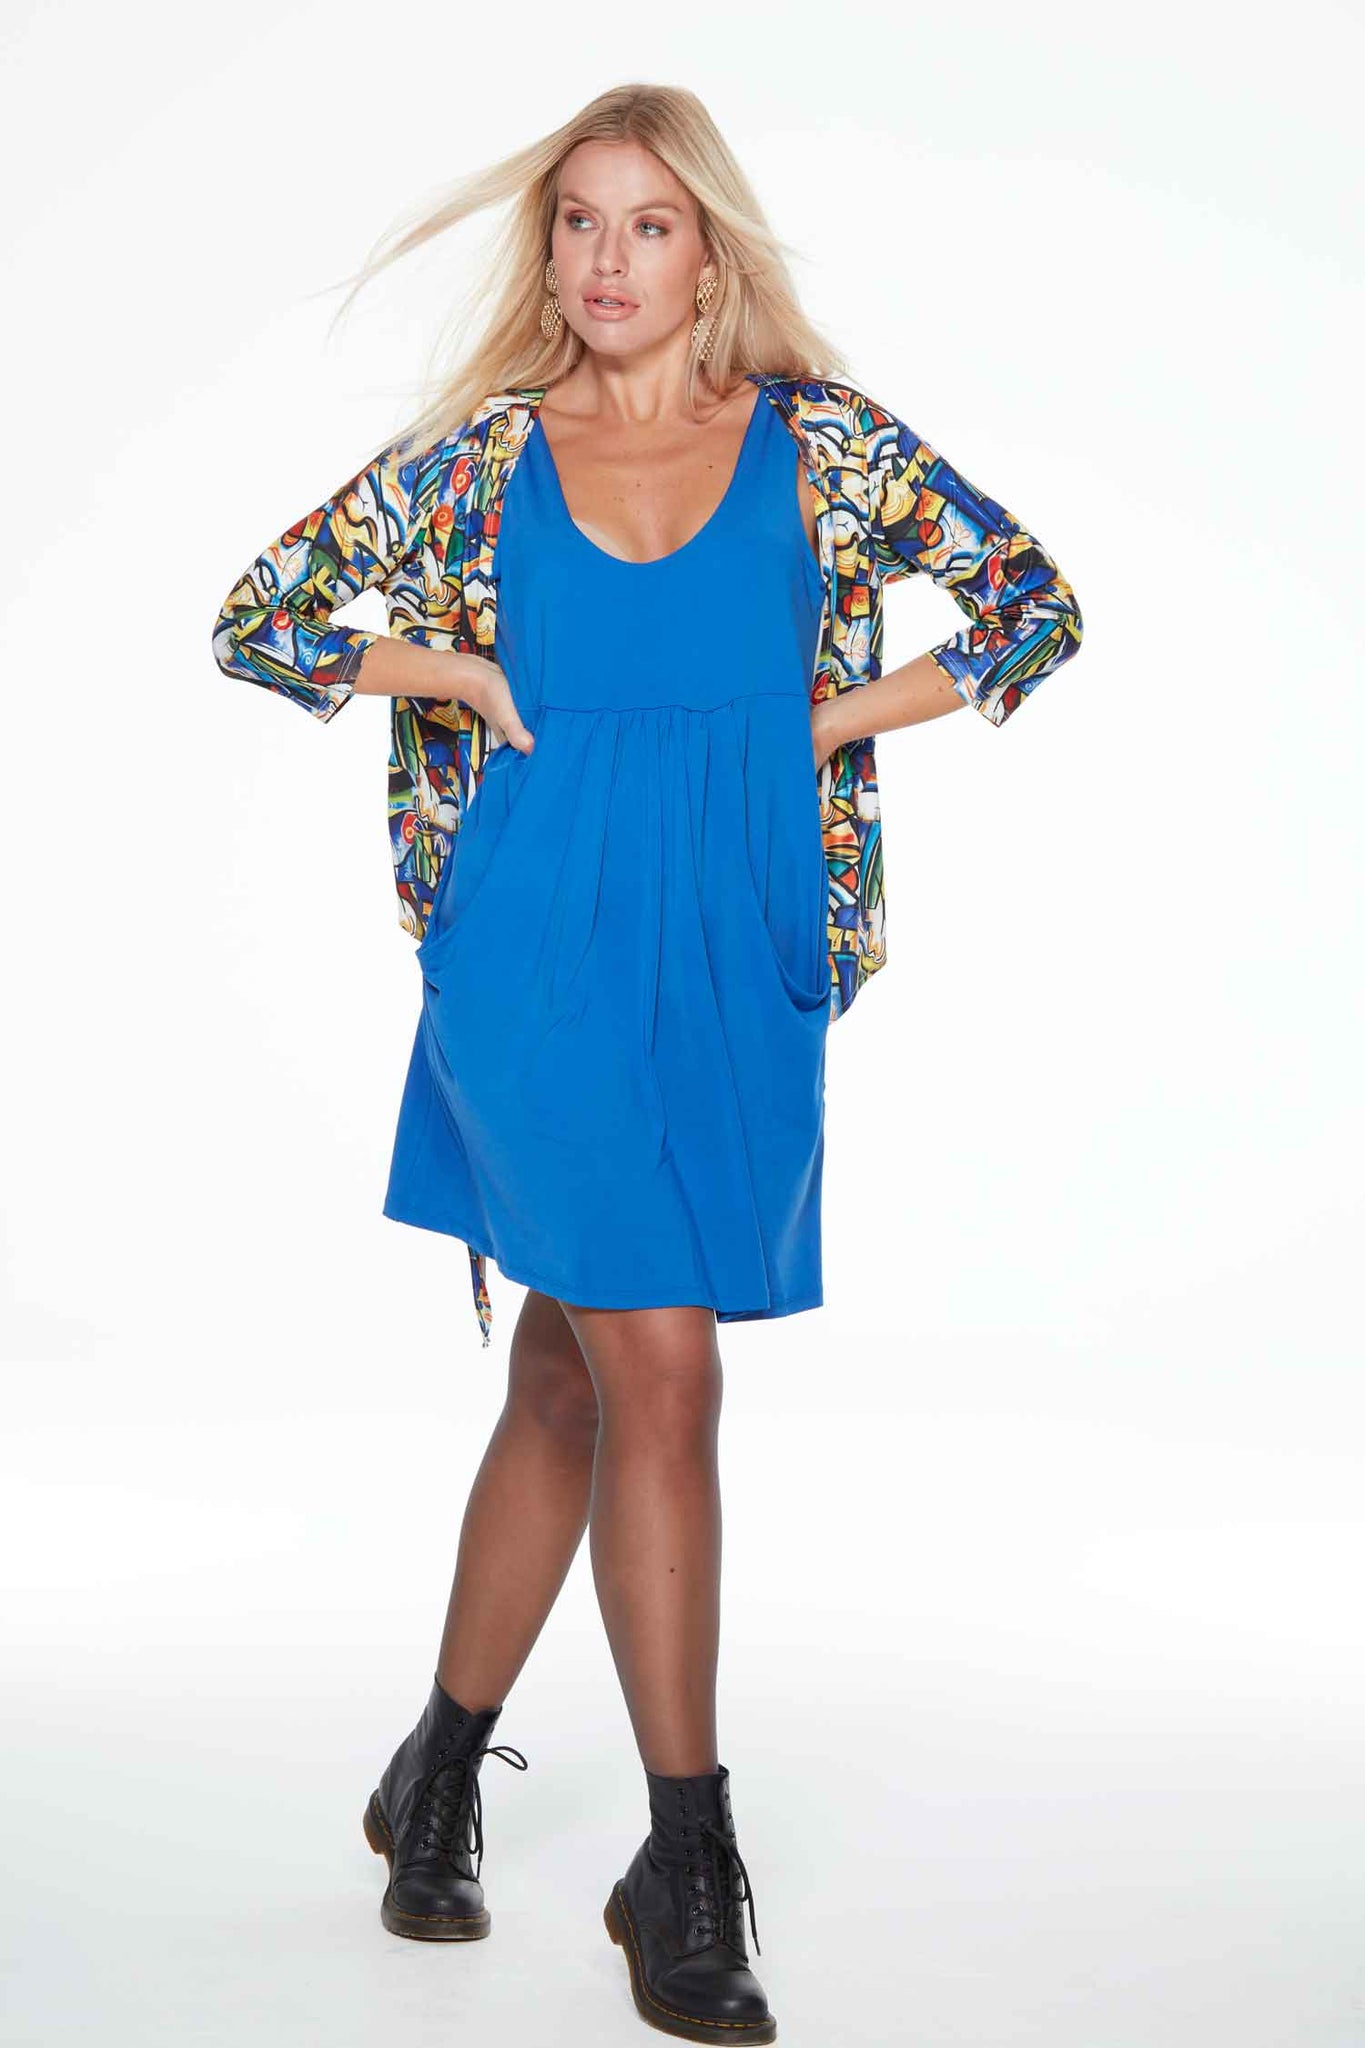 Eva Cobalt Blue Anytime Anywear short dress by Sally Allen